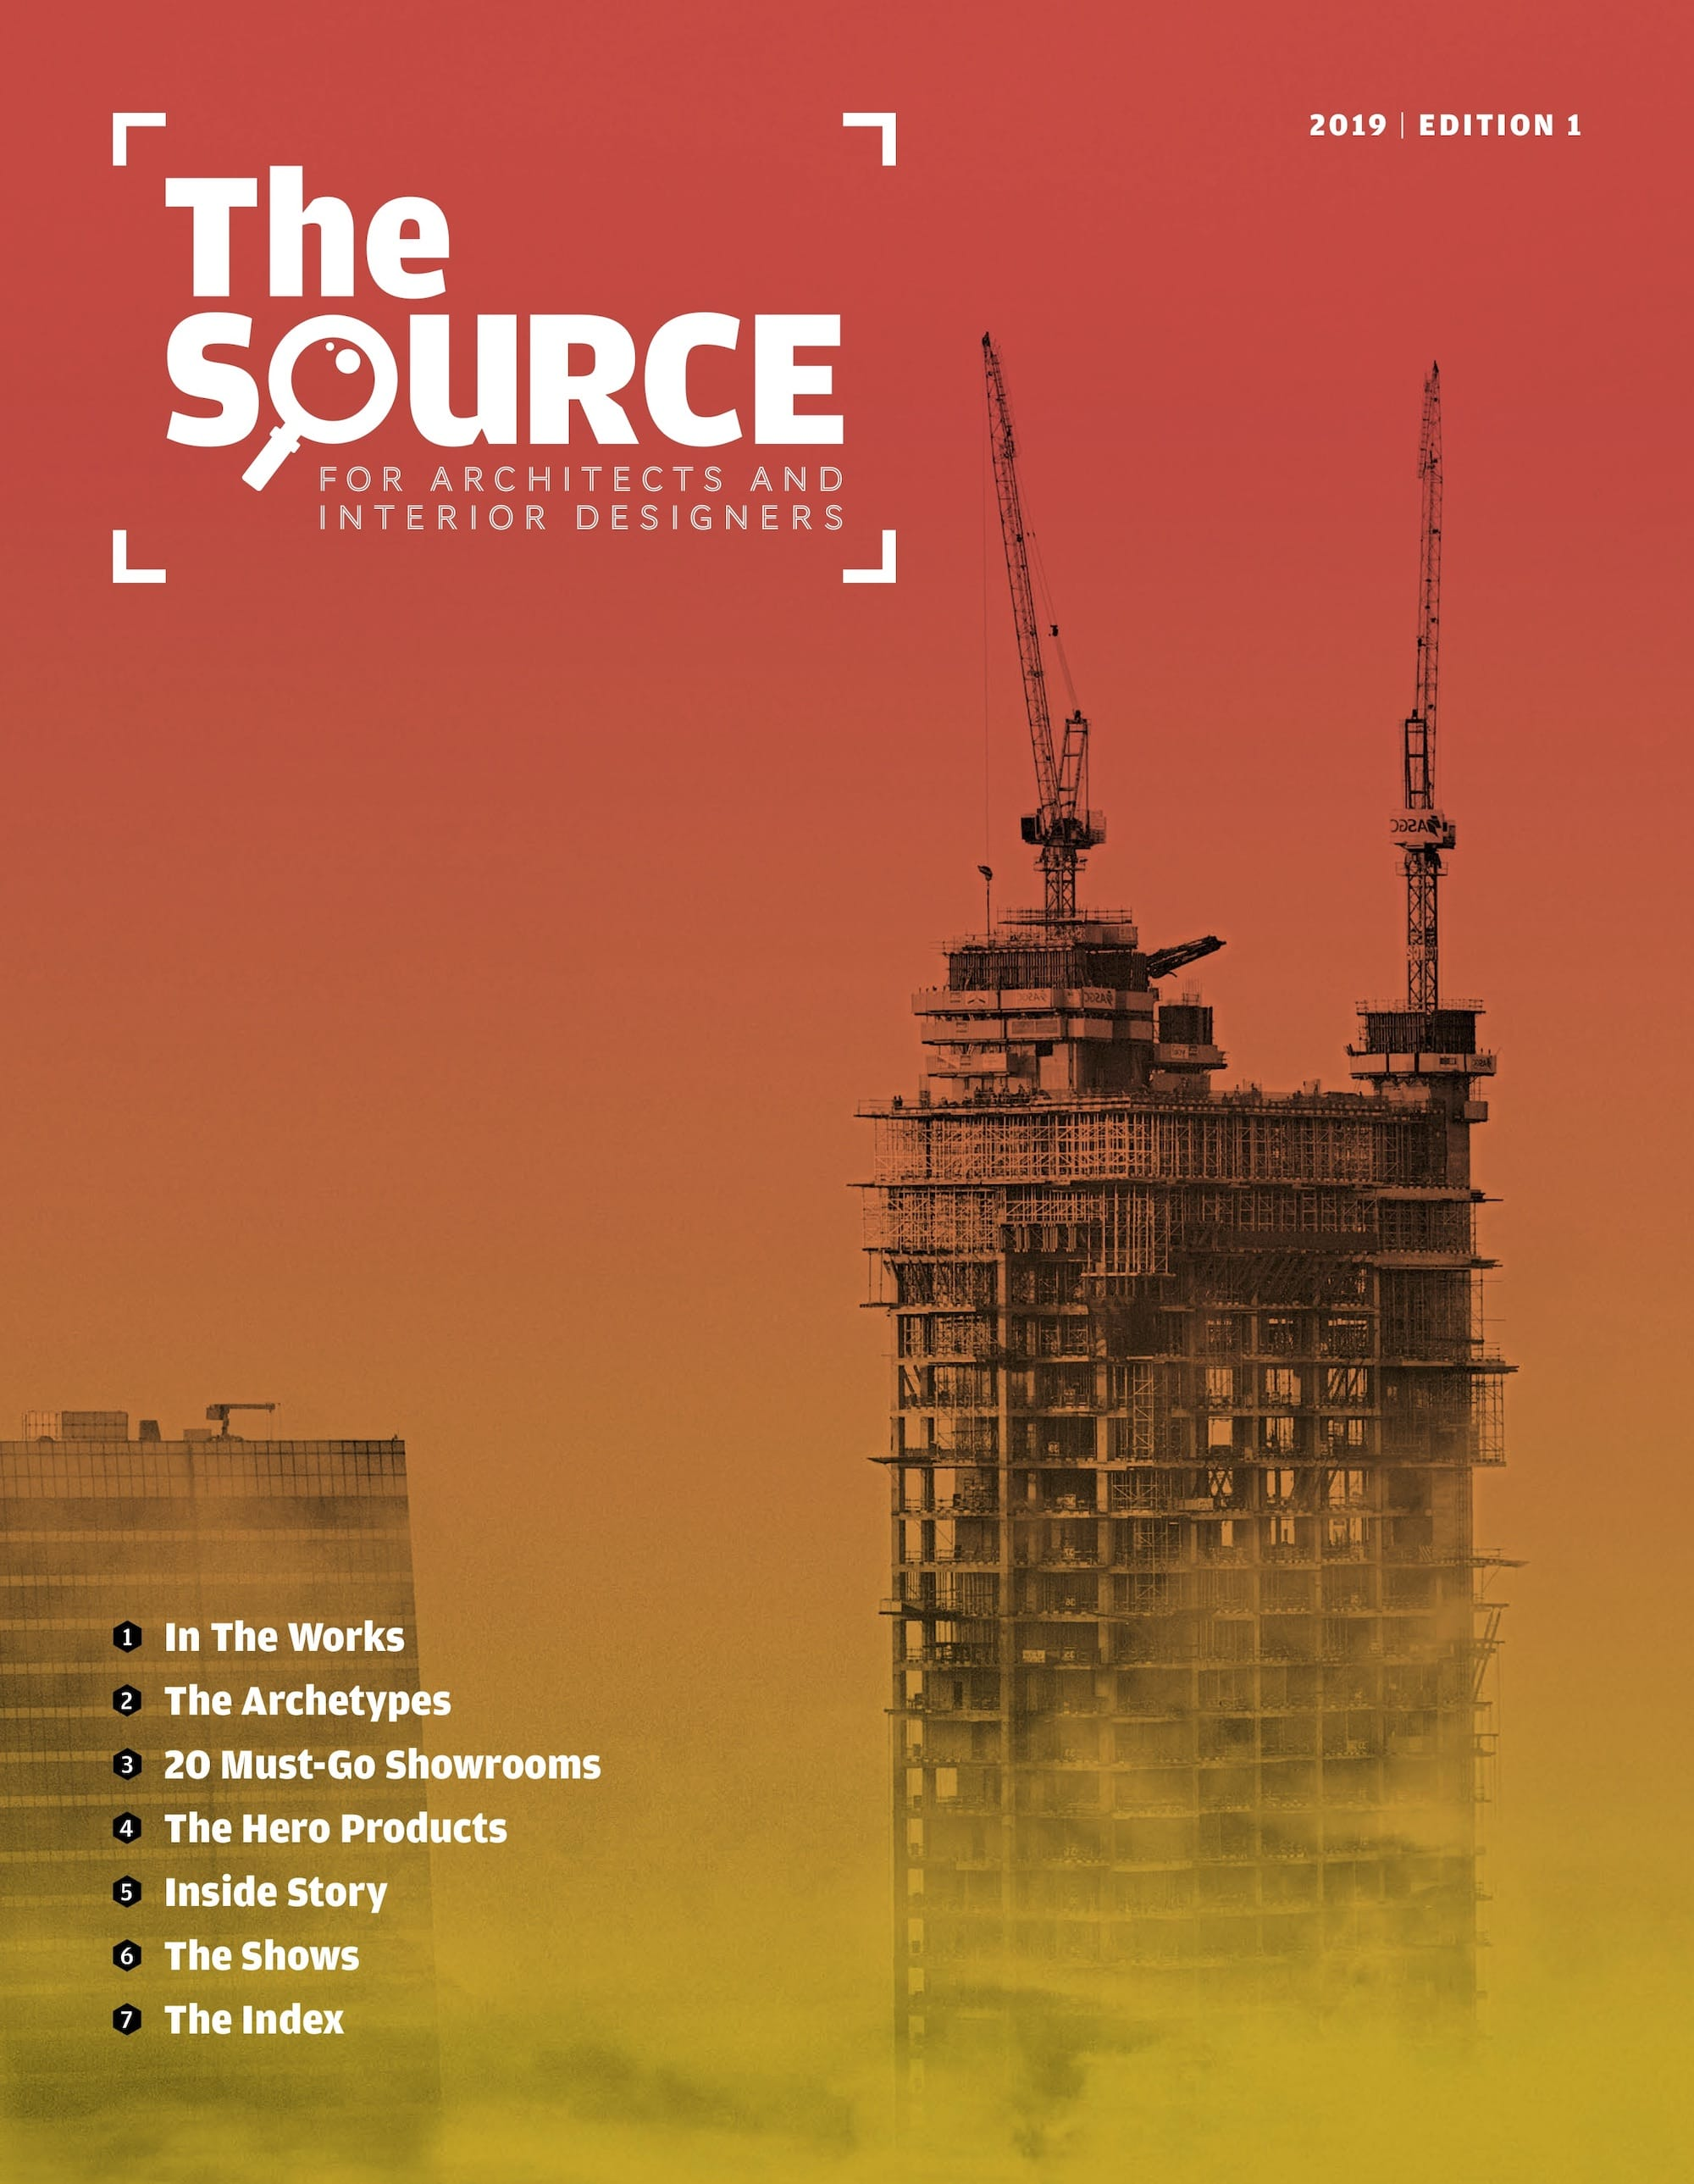 TheSOURCE 2019 ed1_IntheWorks_CL3 1.jpg